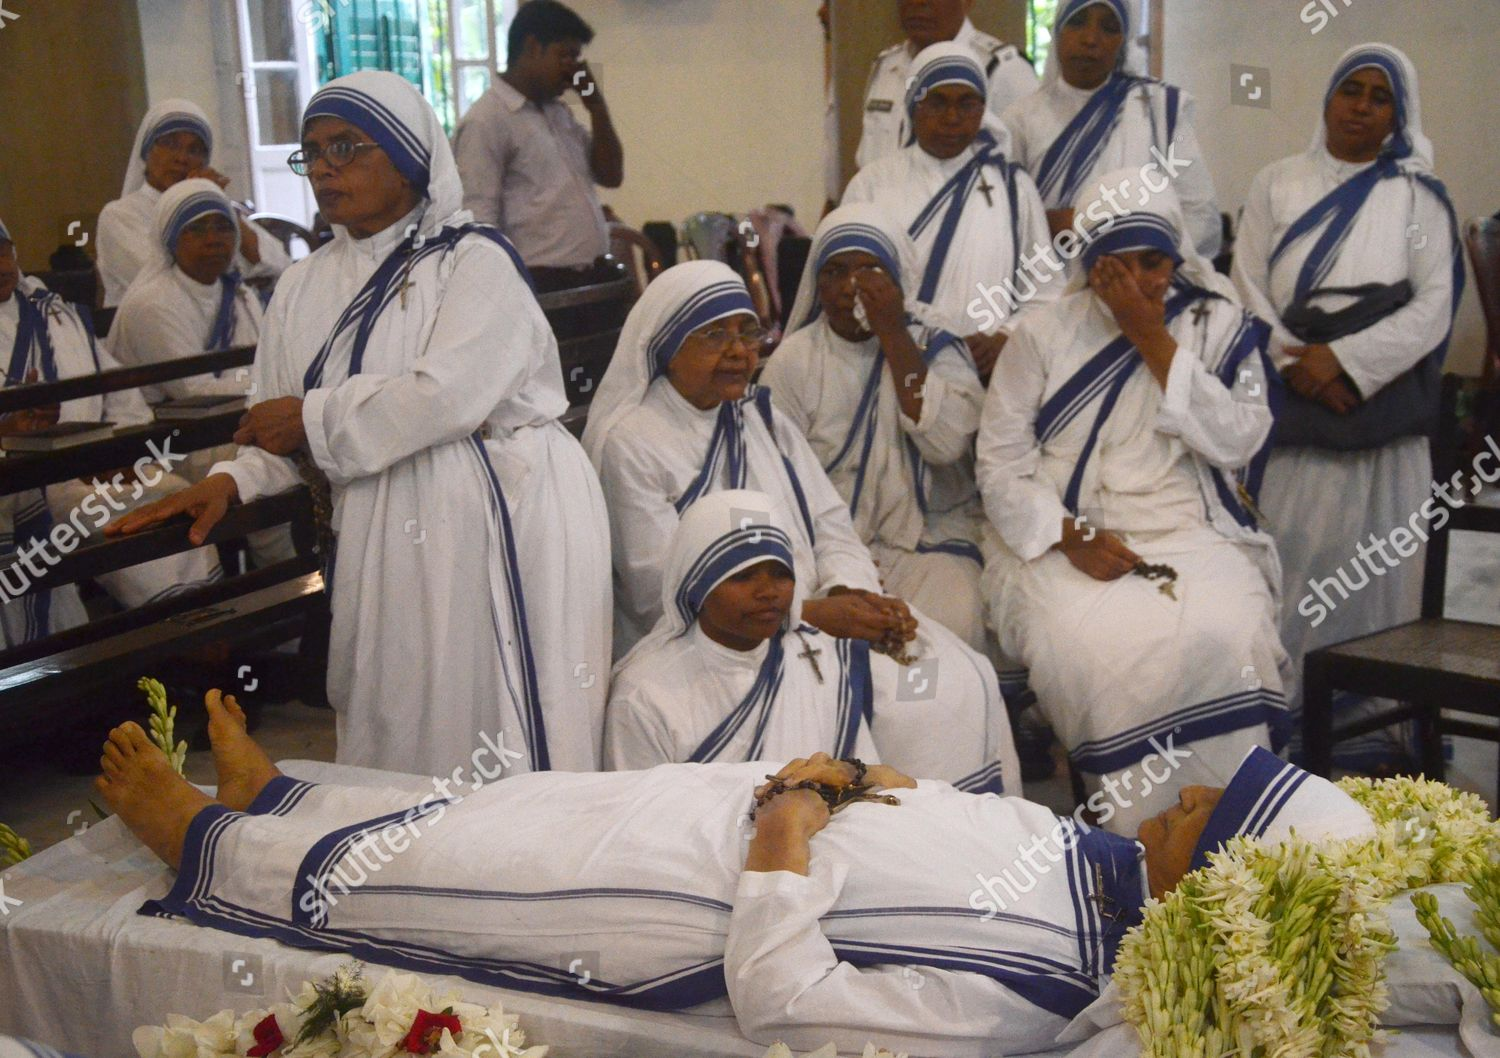 Roman Catholic nuns paying respects Sister Nirmala Editorial